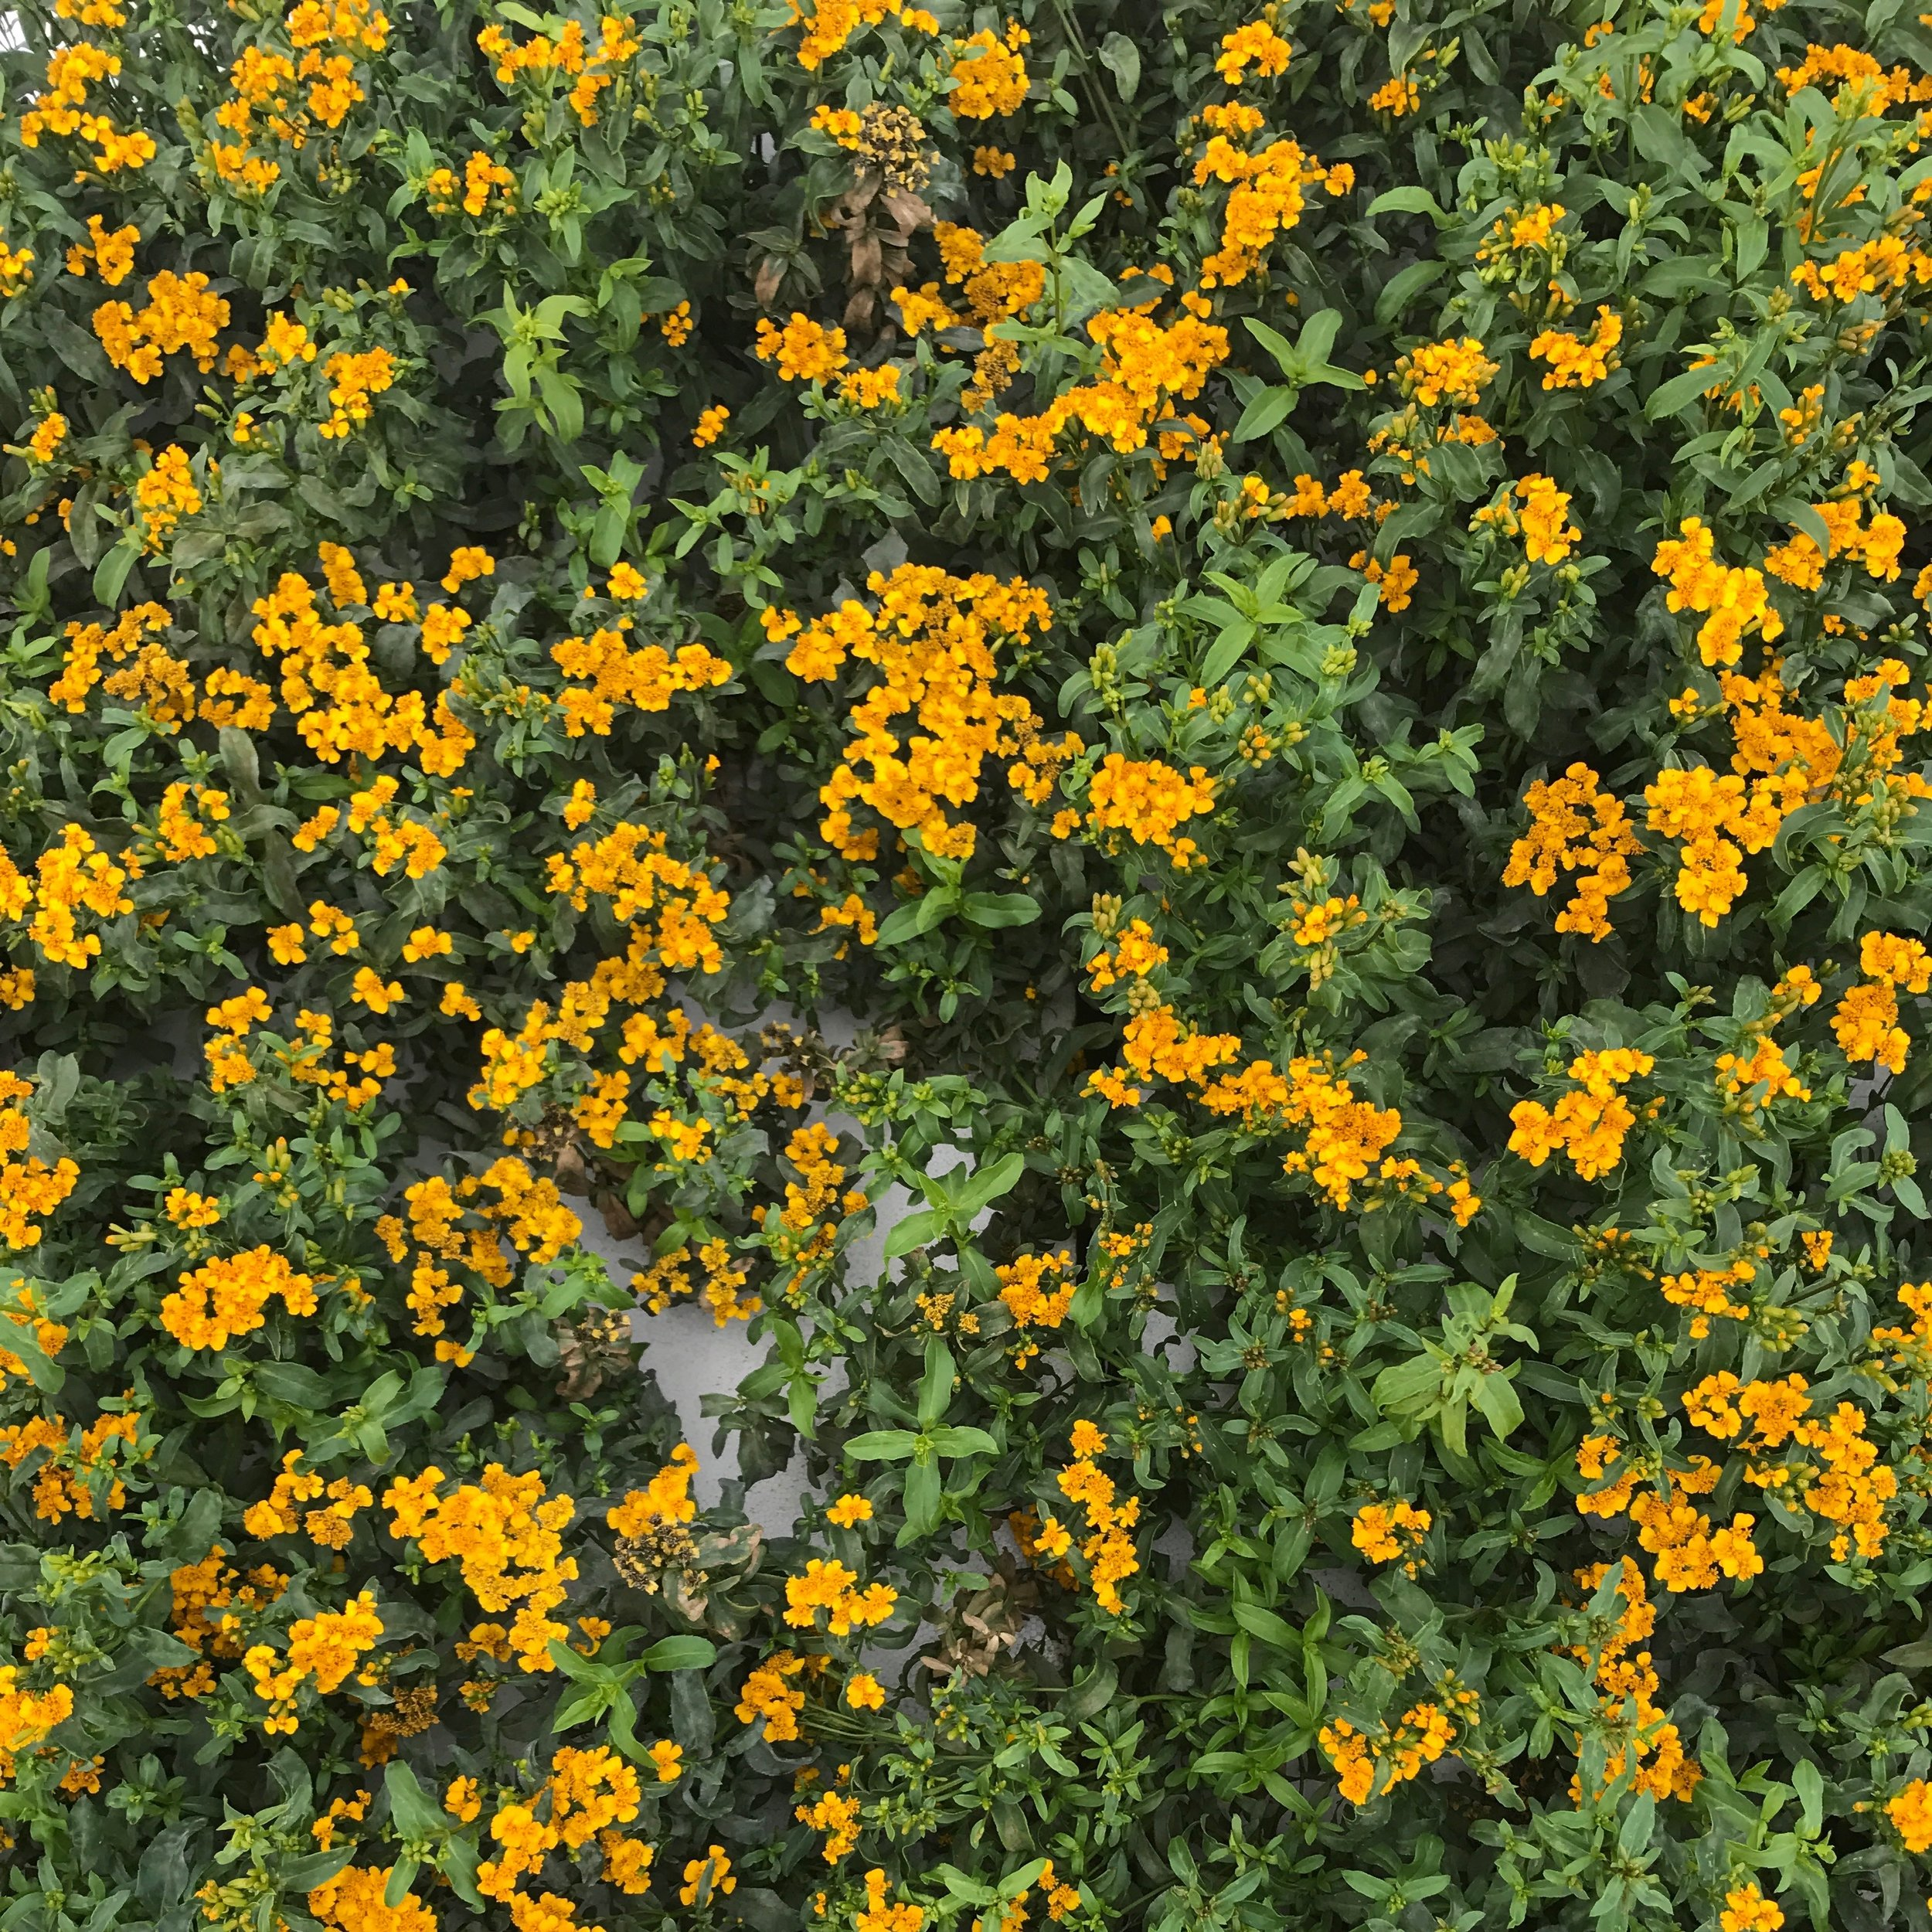 Mexican Marigold Mint - A versatile herb that produces amazing yellow flowers